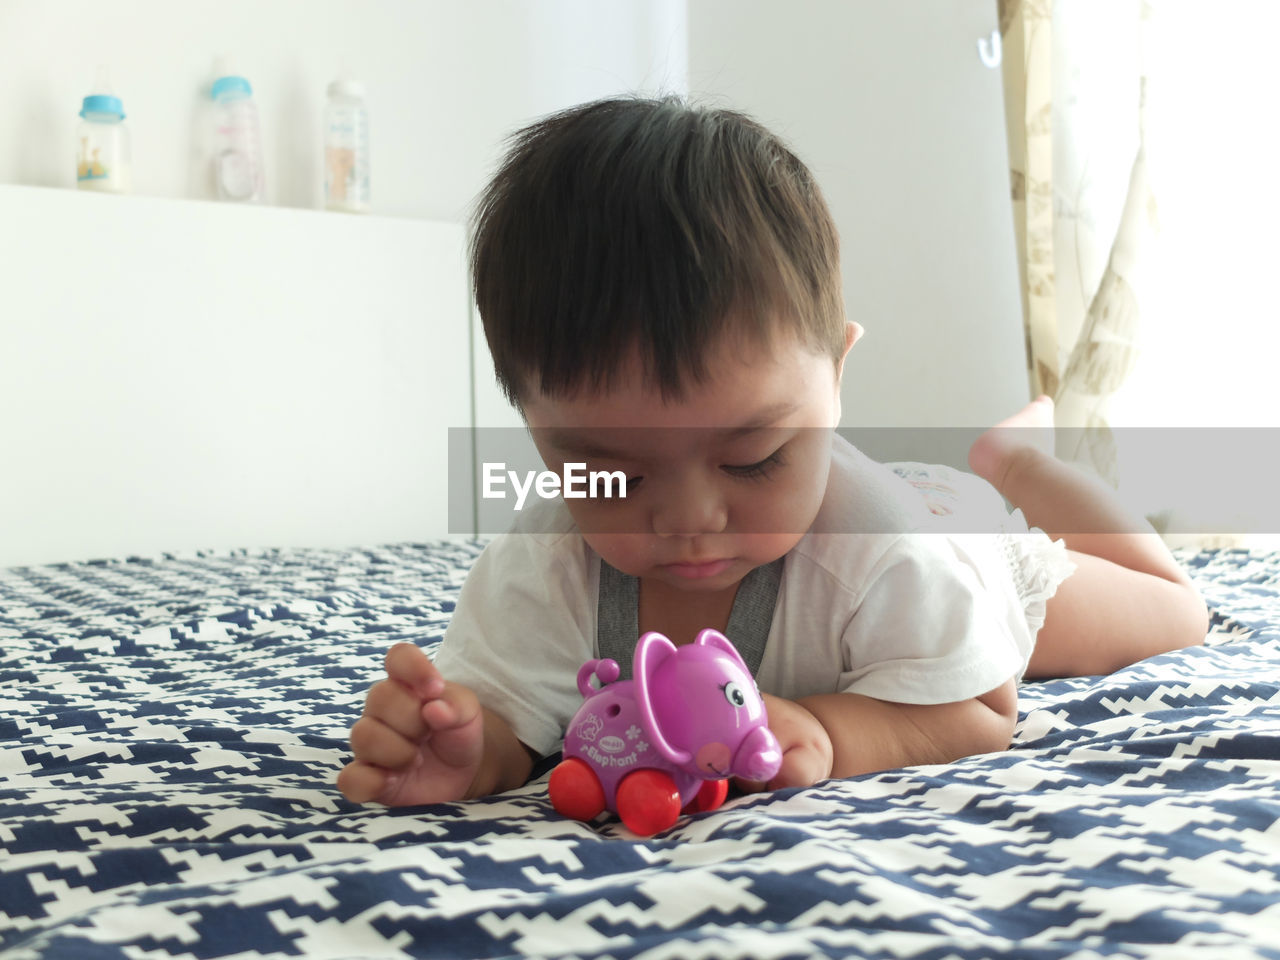 child, real people, one person, childhood, indoors, piggy bank, front view, investment, savings, lifestyles, finance, baby, innocence, bed, home interior, babyhood, young, toddler